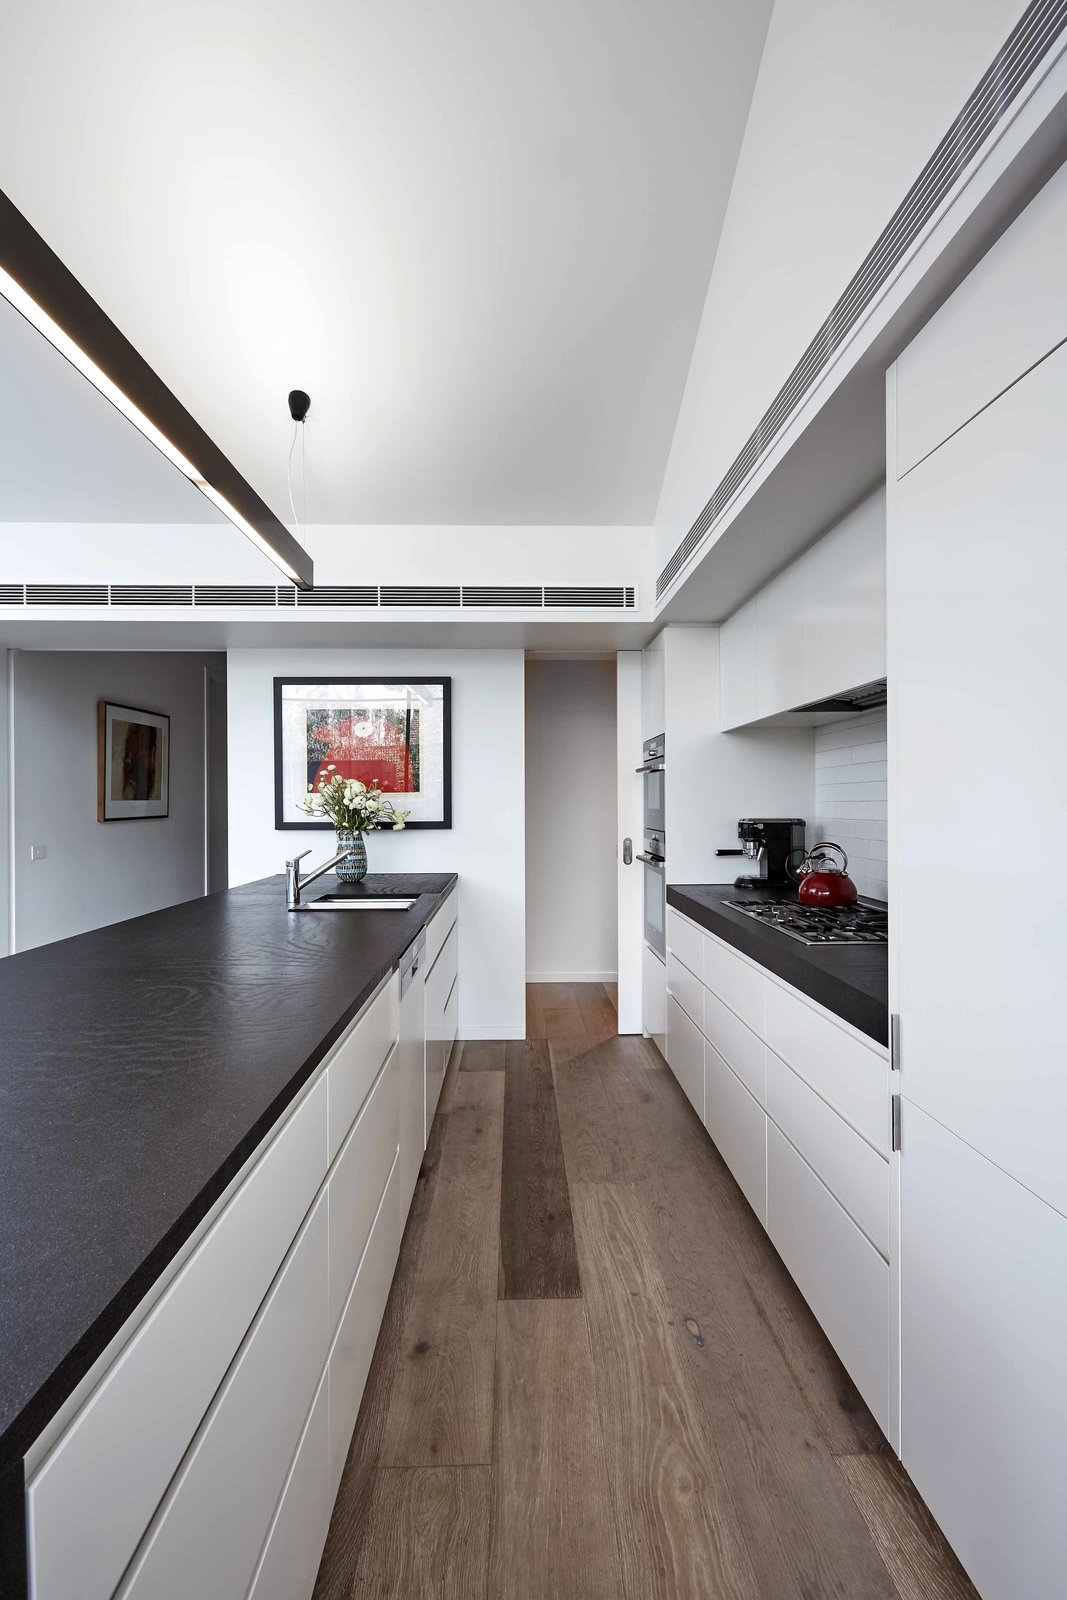 The streamlined kitchen features Miele cooktop, Sirius hood, Siemens oven, and Fisher & Paykel refrigerator.  127+ Inspiring Interior Ideas by Dwell from Just Redo It: A Home Near Melbourne Takes Another Stab at a Dated '80s Addition